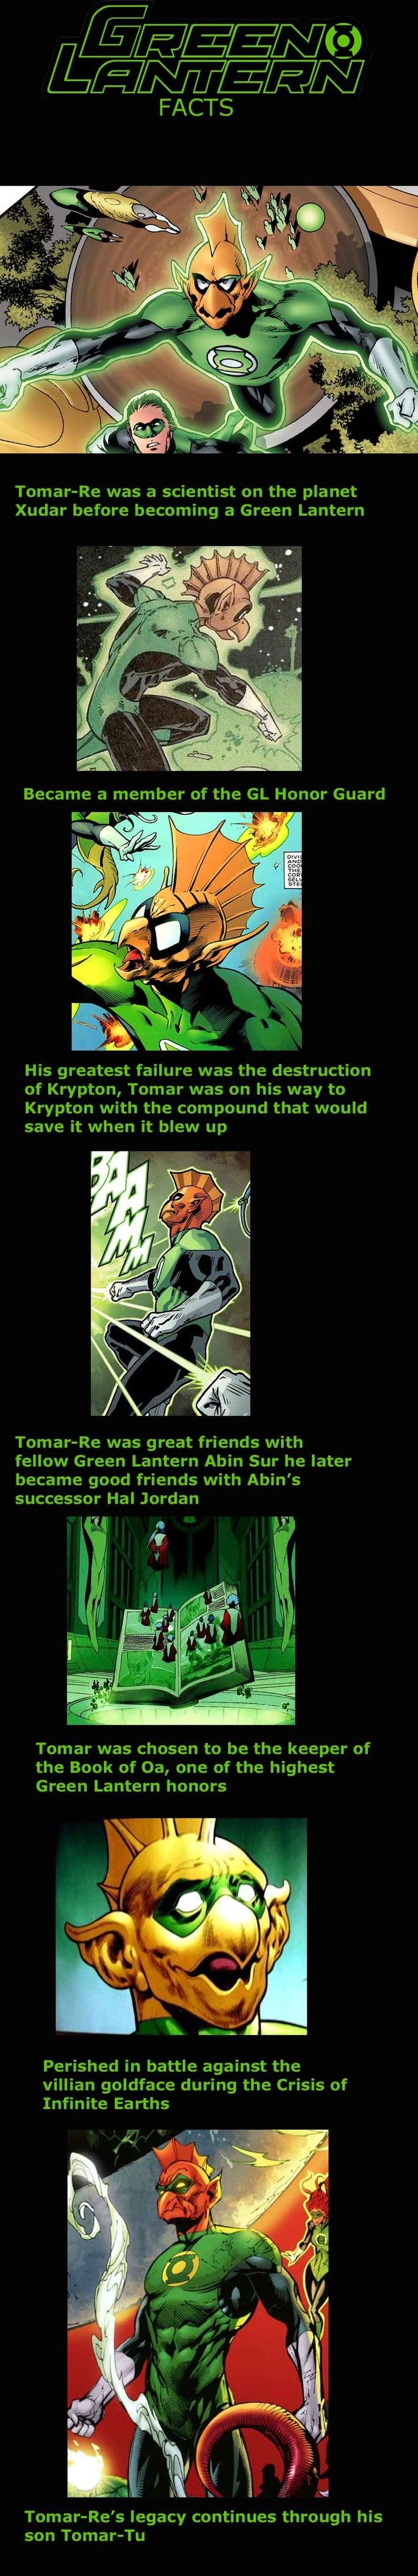 Green Lantern Facts- Tomar-Re // funny pictures - funny photos - funny images - funny pics - funny quotes - #lol #humor #funnypictures